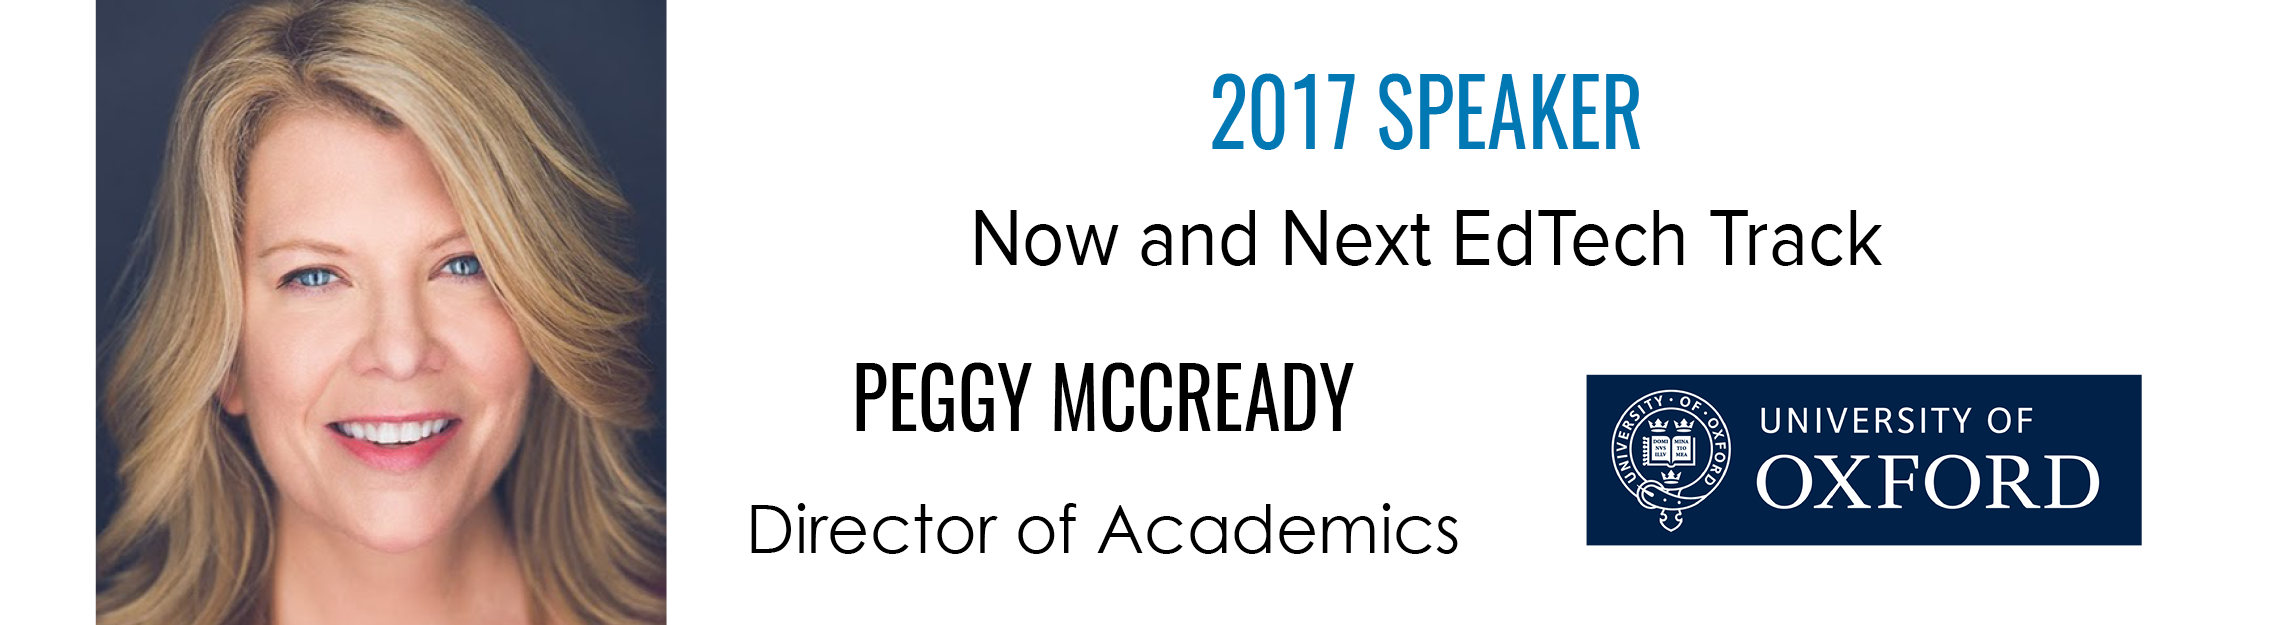 Peggy McCready_UofOxford.png